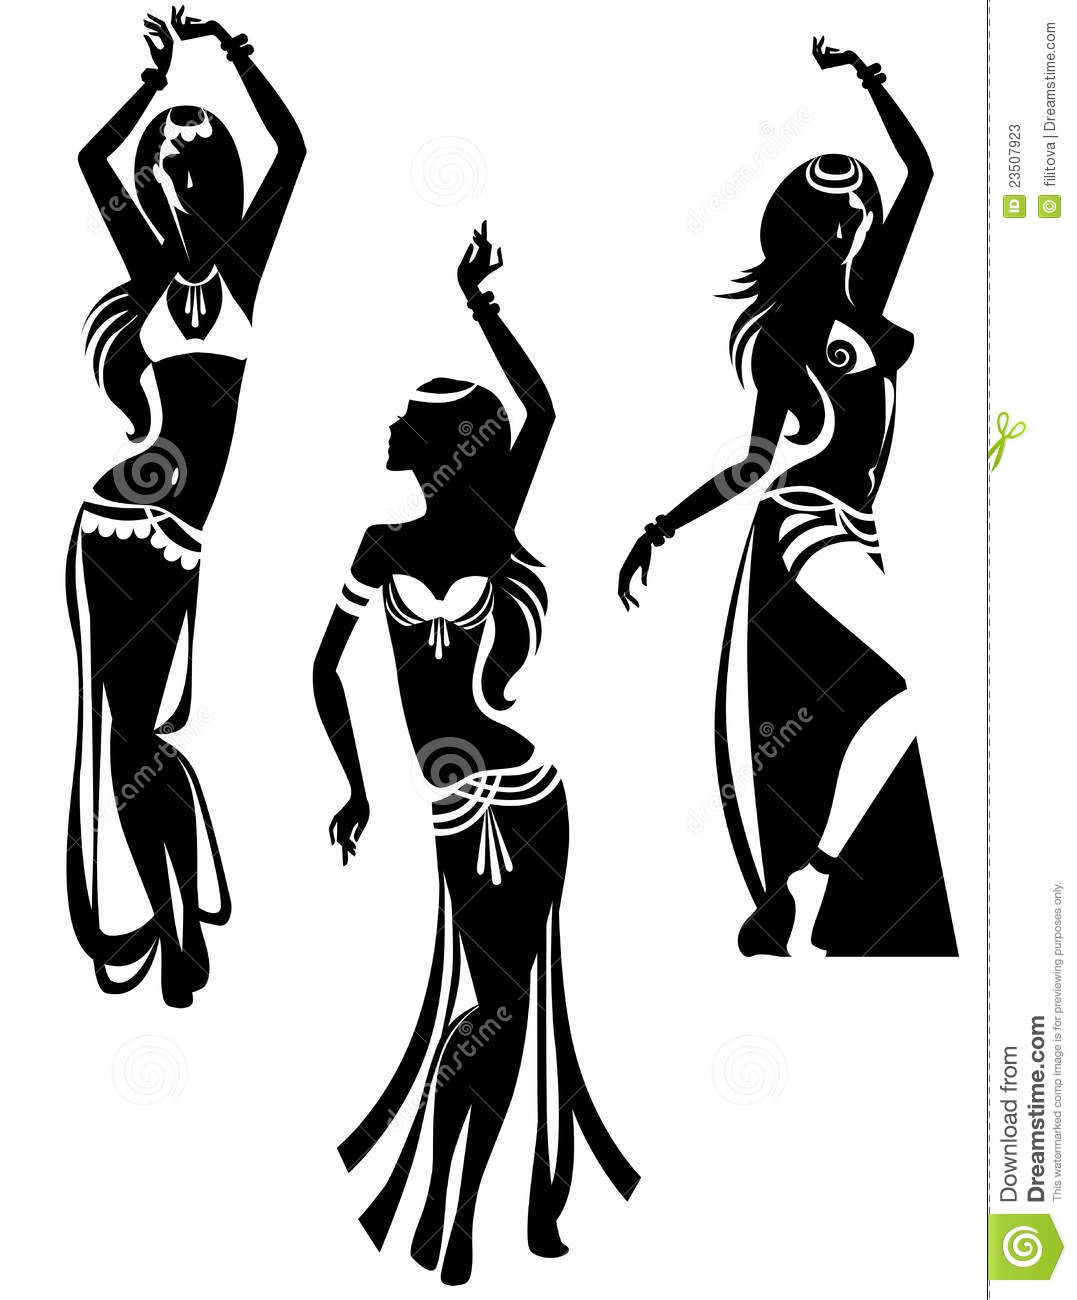 belly dancer silhouette clip art african american female mariachi illustration silhouette belly dancer art clip silhouette